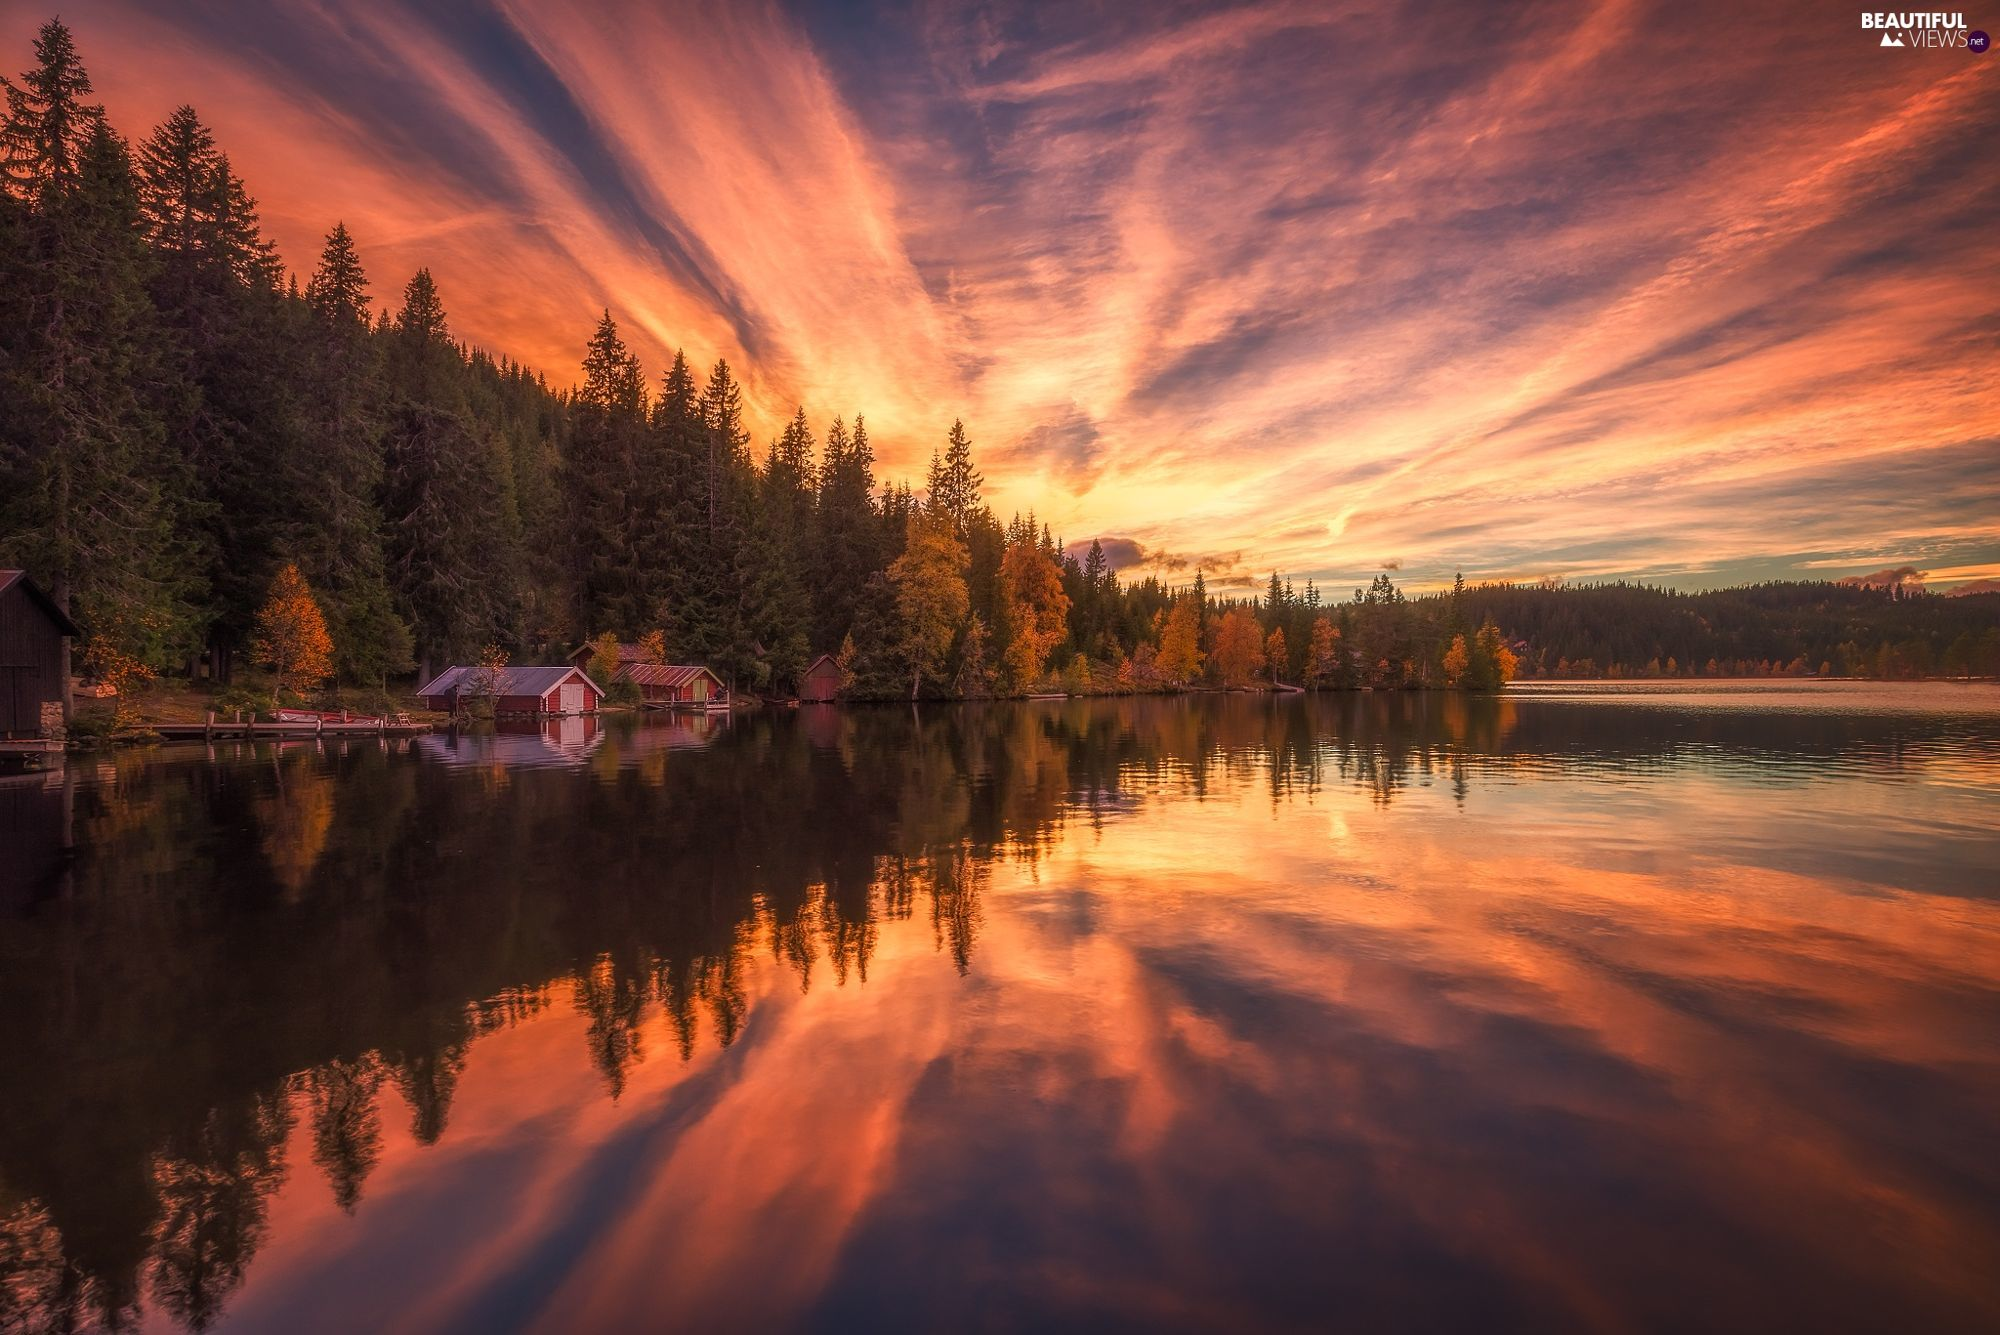 lake, forest, trees, Houses, viewes, Norway, Ringerike, reflection, clouds